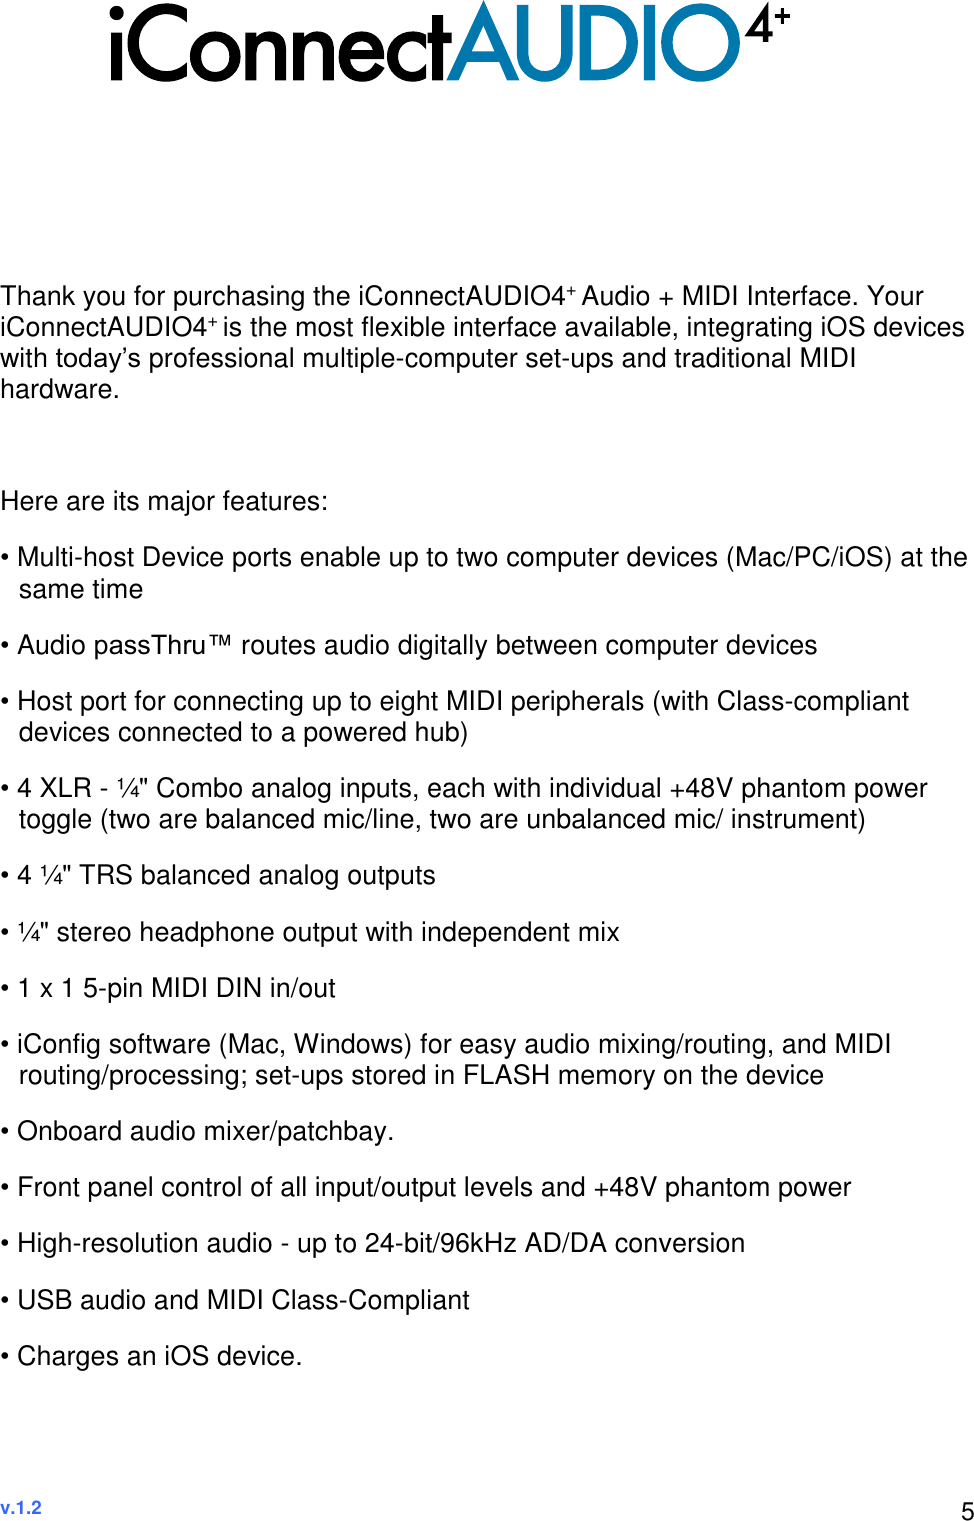 I Connectivity Connect AUDIO4+ Owner's Manual (Version 1 2